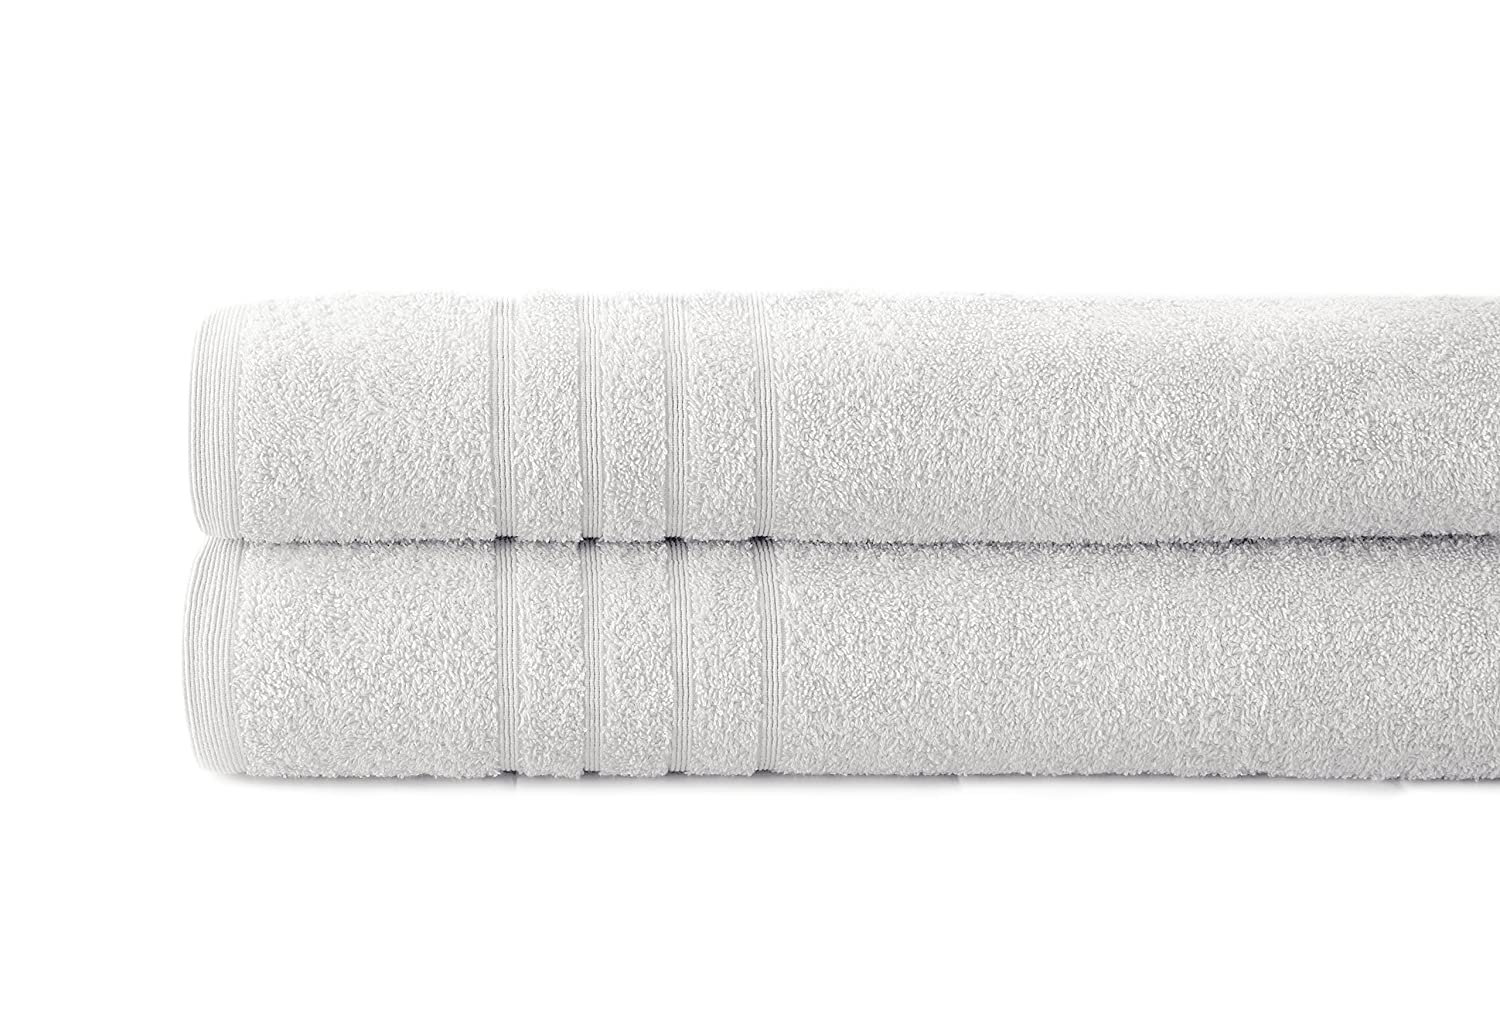 5CTNTL2G-IVY-ST Ivory Amrapur Overseas 2-Pack 100/% Combed Cotton Super Soft Oversized 450GSM Bath Sheet Set